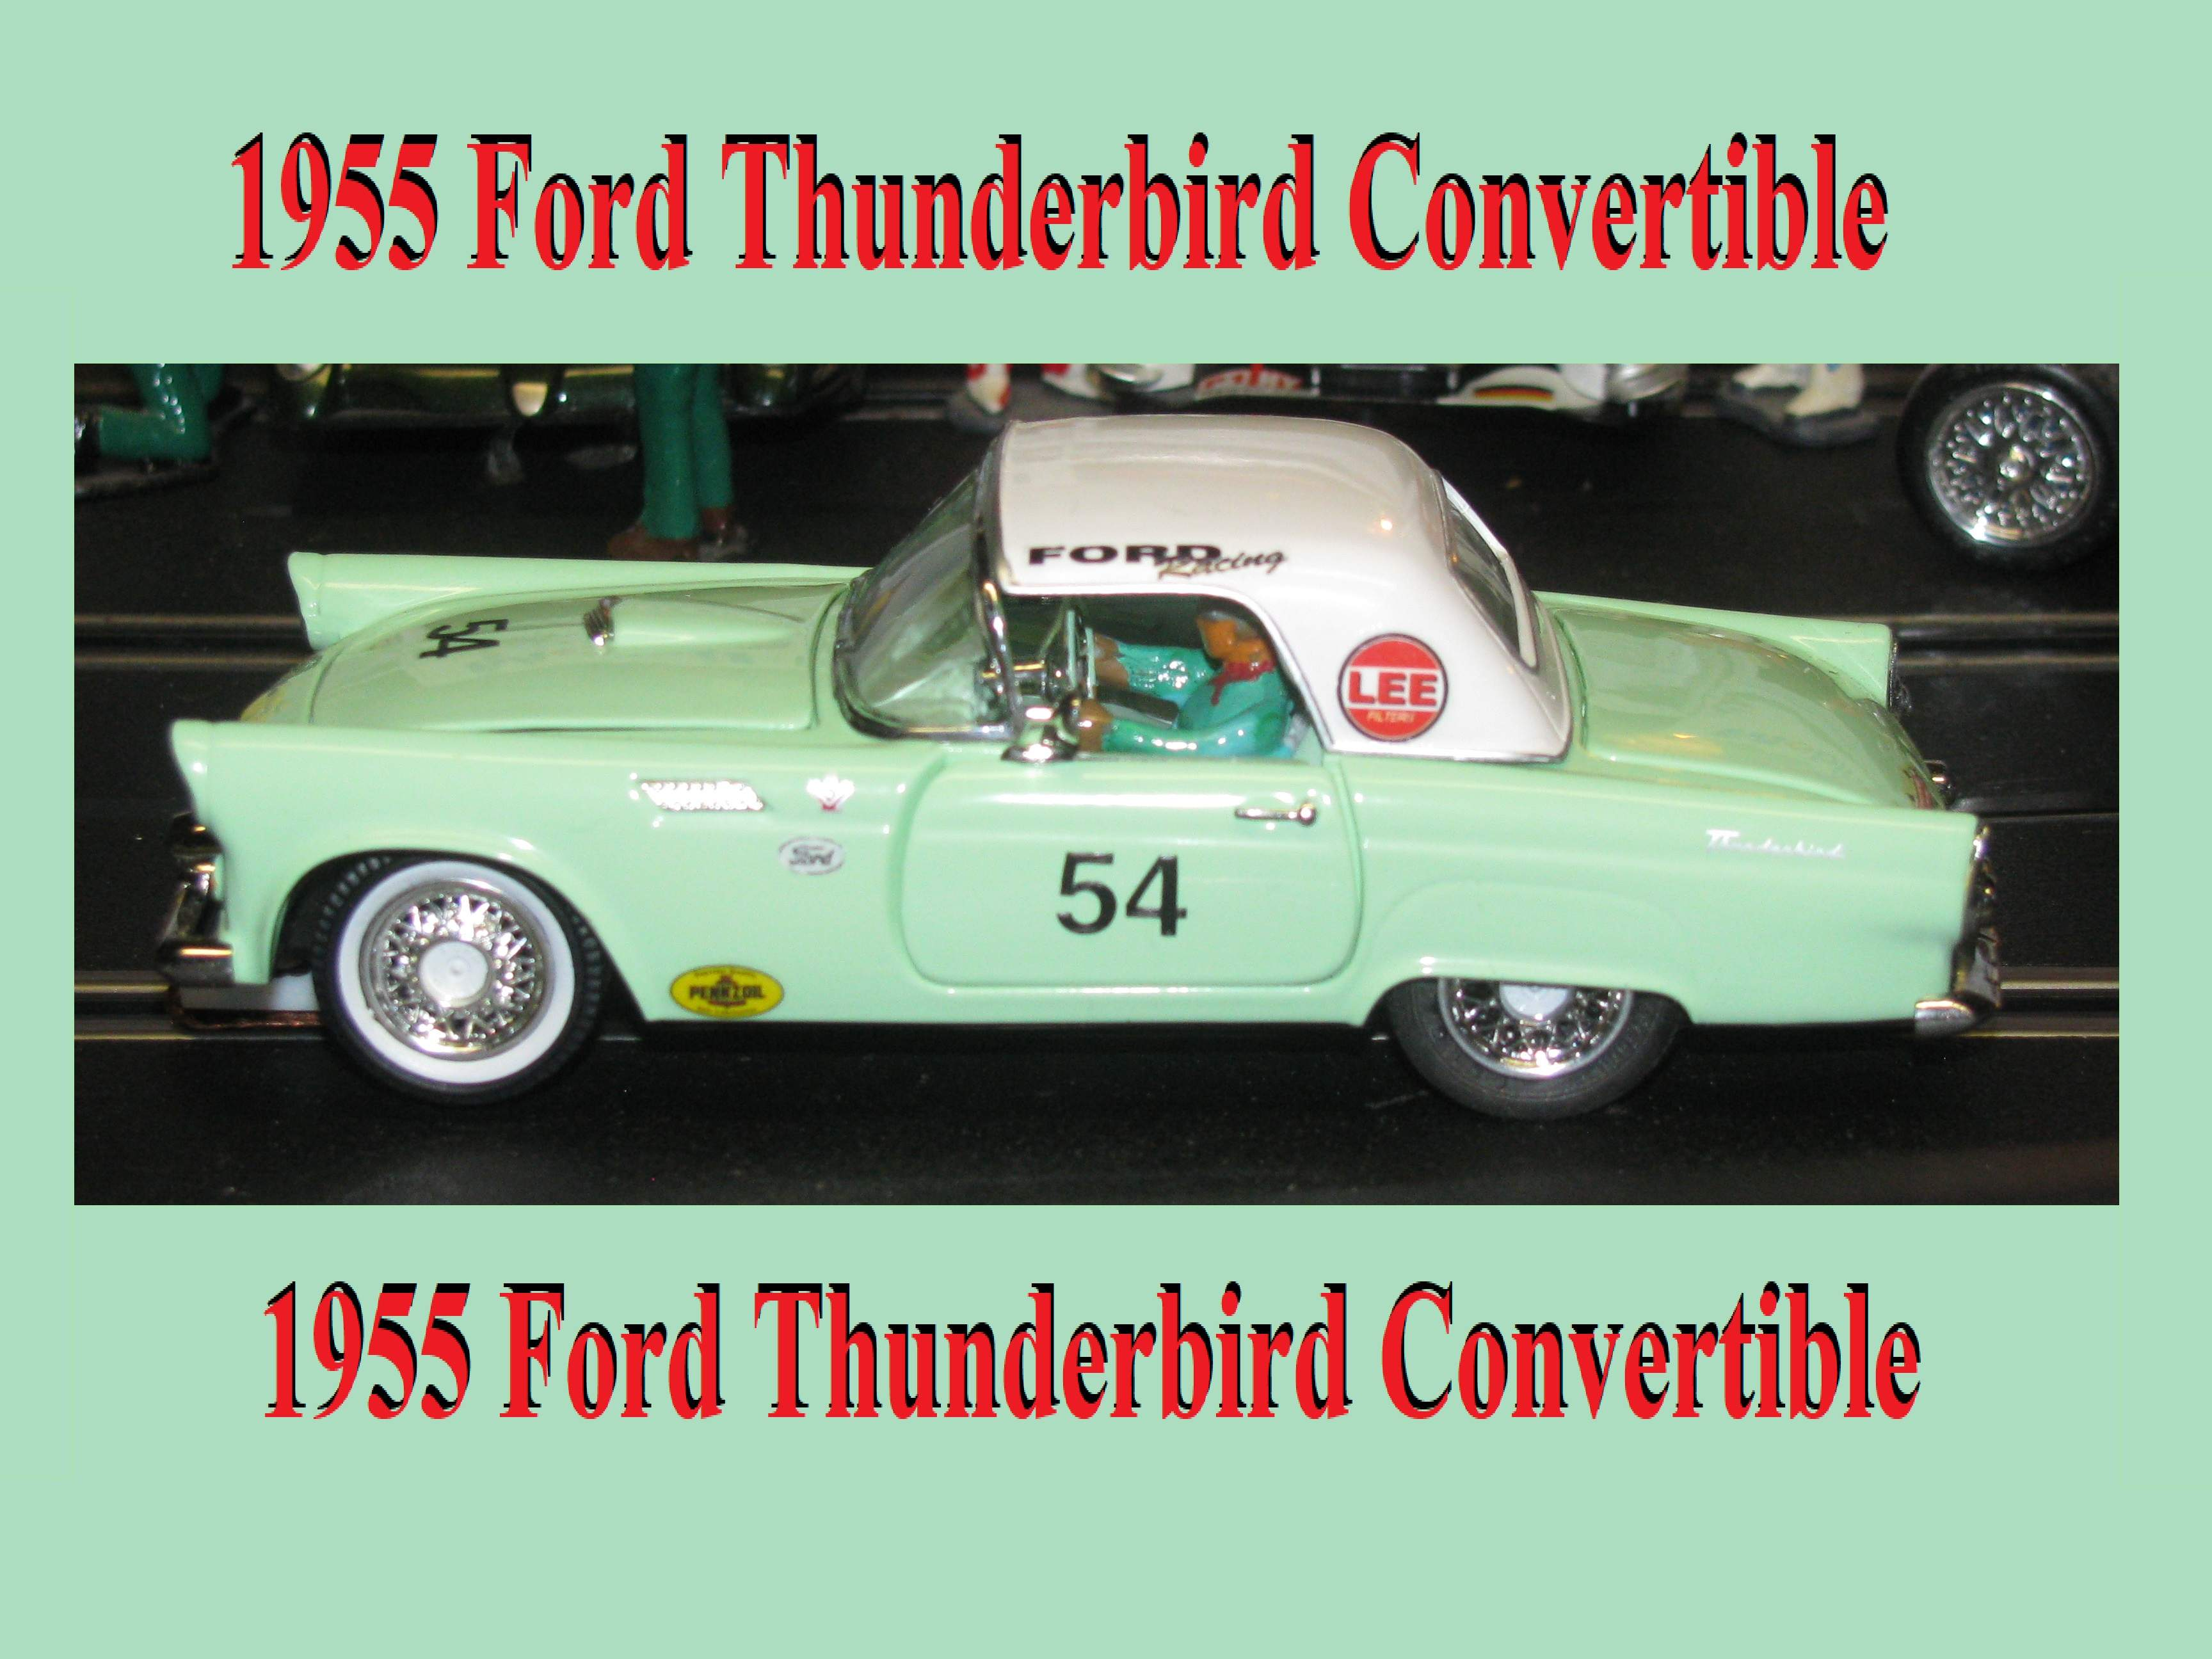 * Happy New Year Sale * Ford Thunderbird Convertible Slot Car 1:32 Scale in Springmist Green with Die Cast Body – Car #54